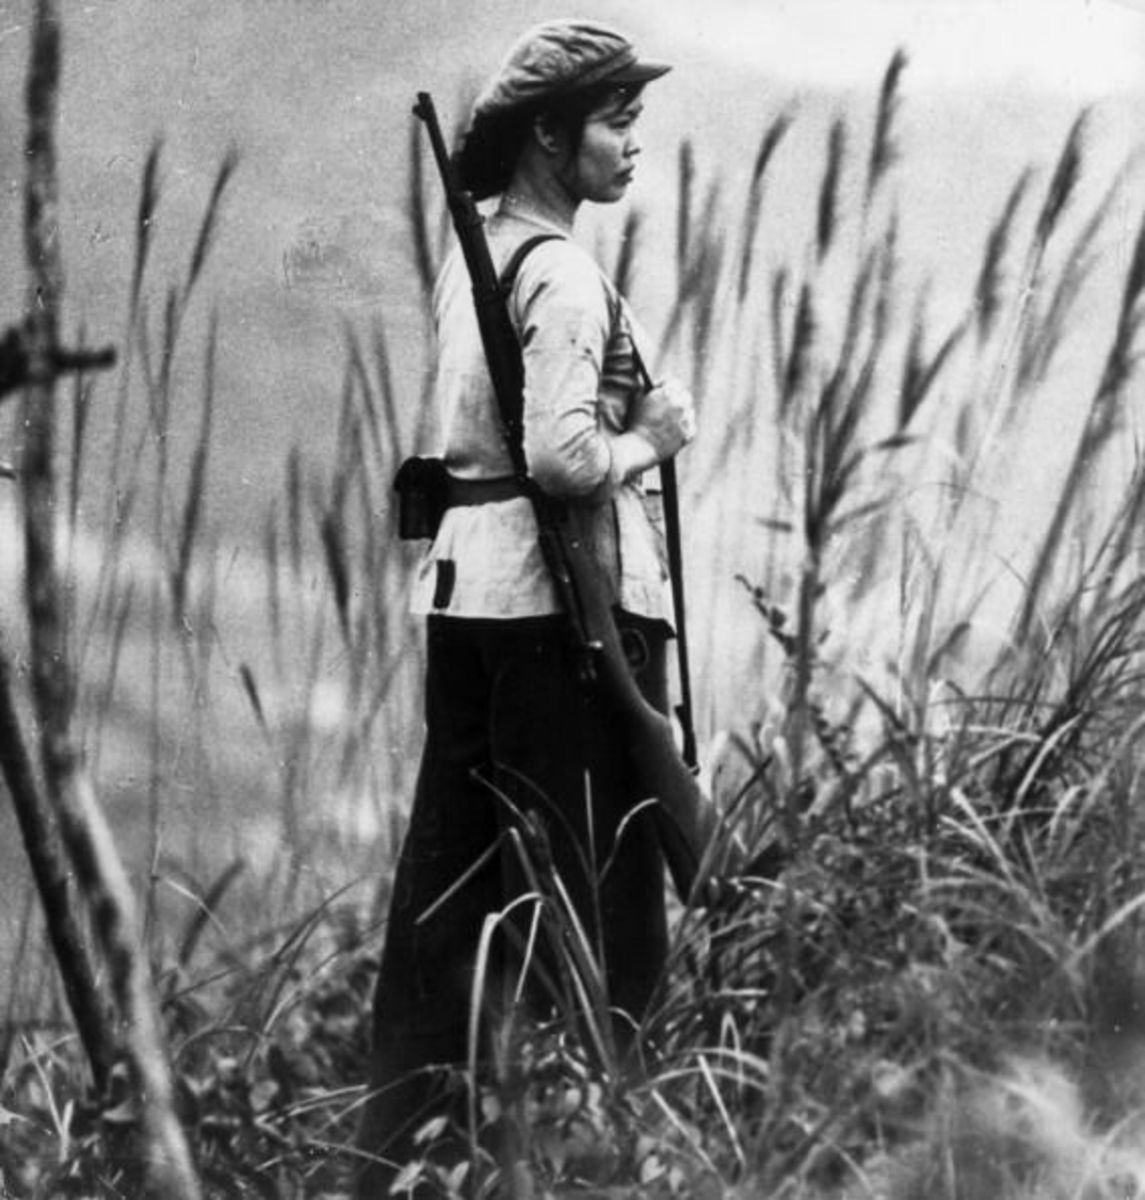 Many Vietnamese women would take up arms against the American troops in South Vietnam.